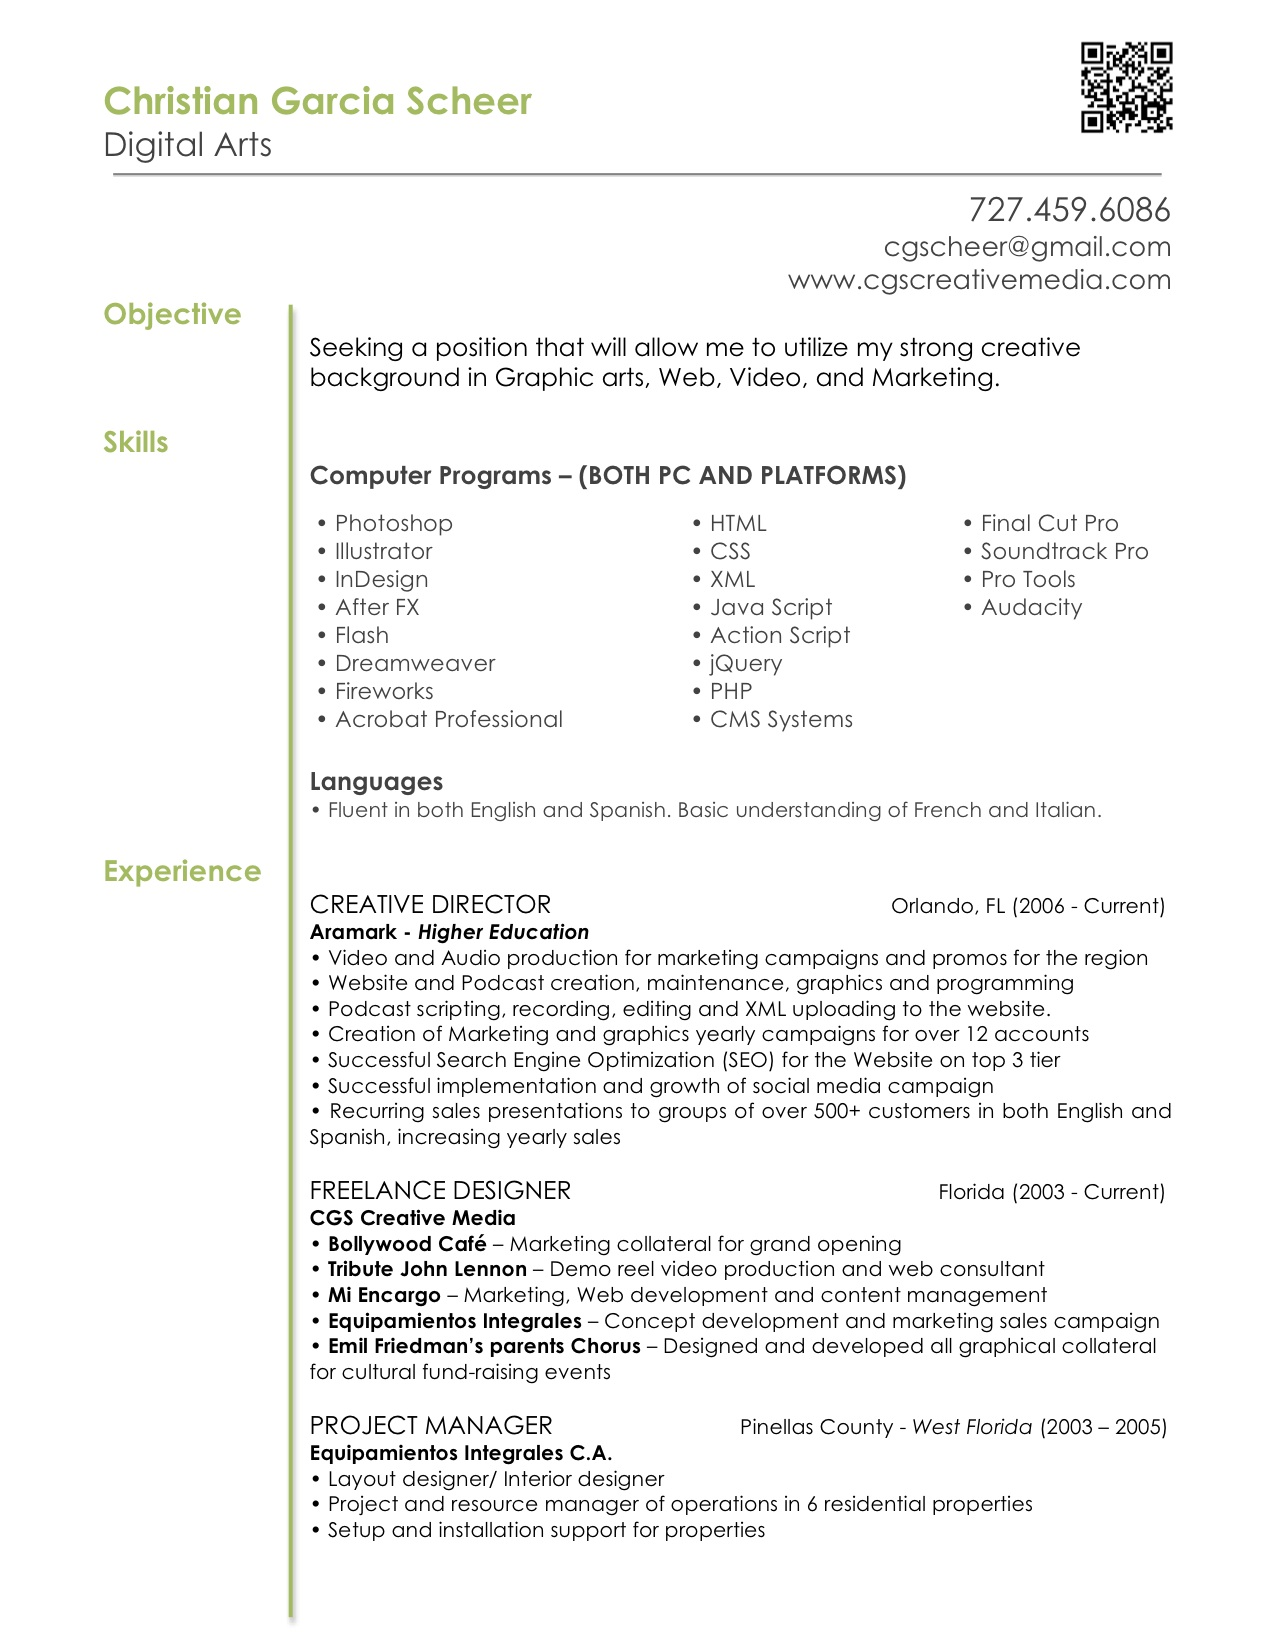 graphic design resume objective images examples and newdesignfile designer statements Resume Graphic Designer Resume Objective Statements